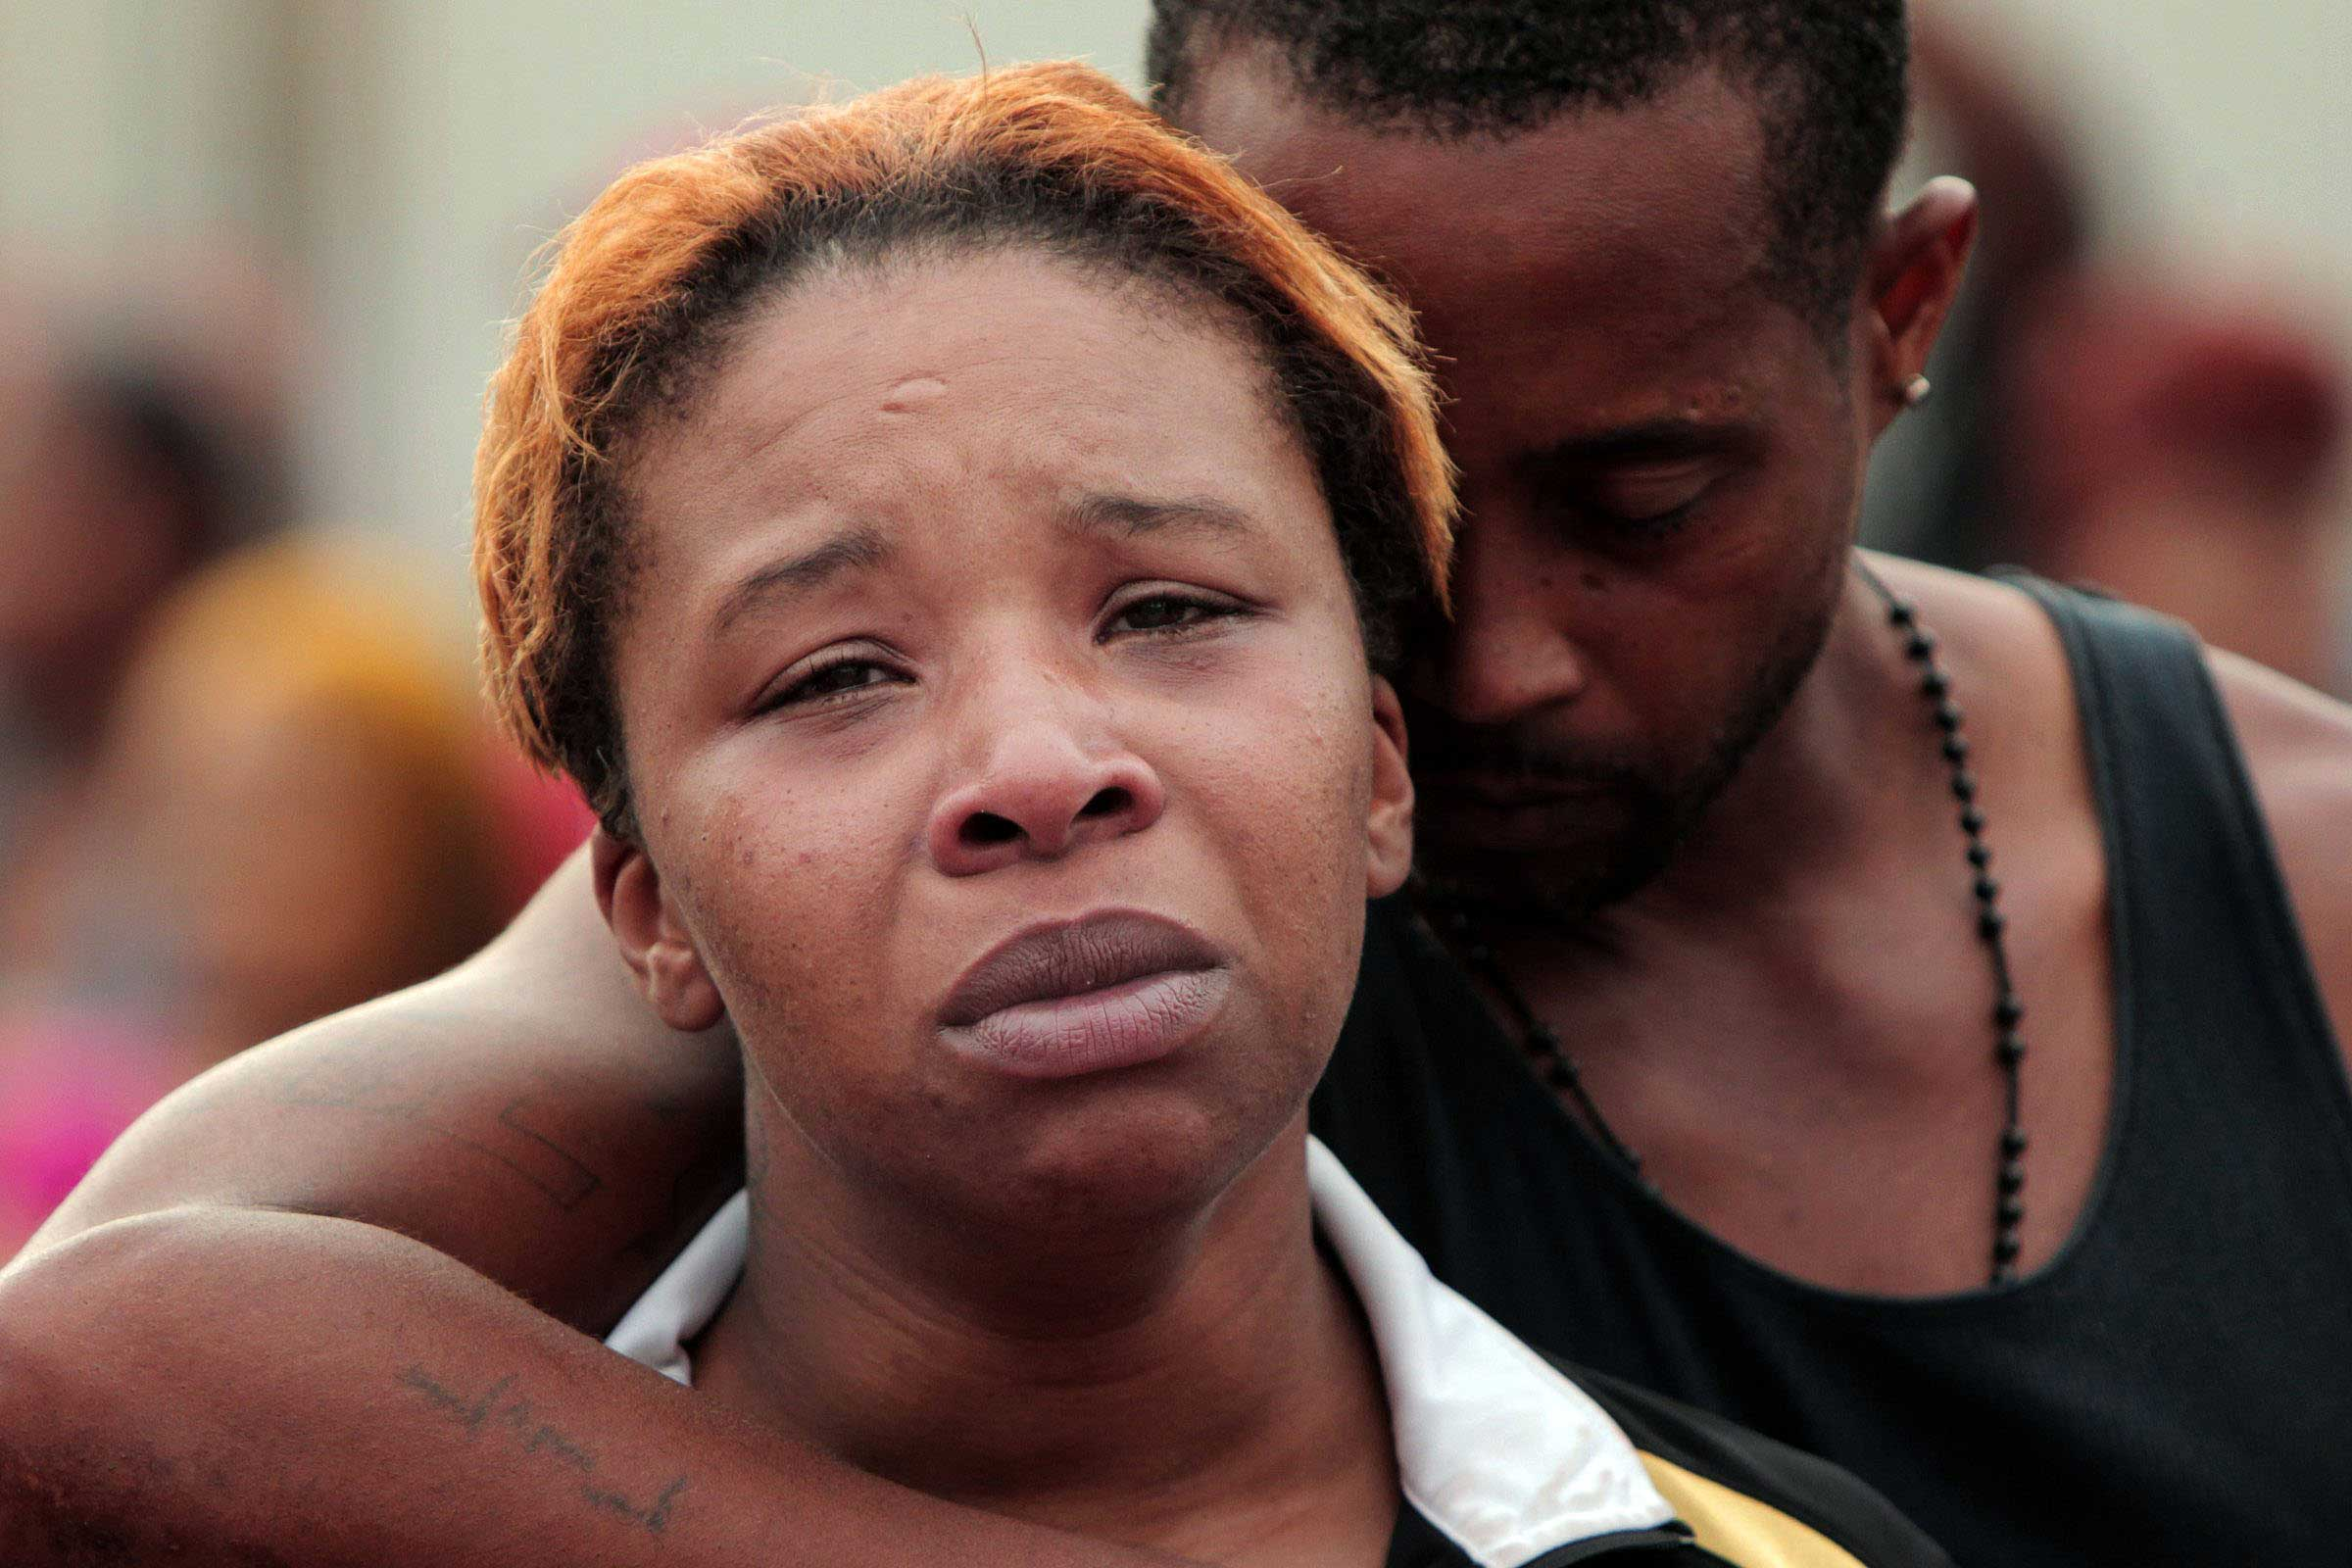 Lesley McSpadden, Brown's mother, is comforted by her husband, Louis Head, on Aug. 9, 2014, after her son's death